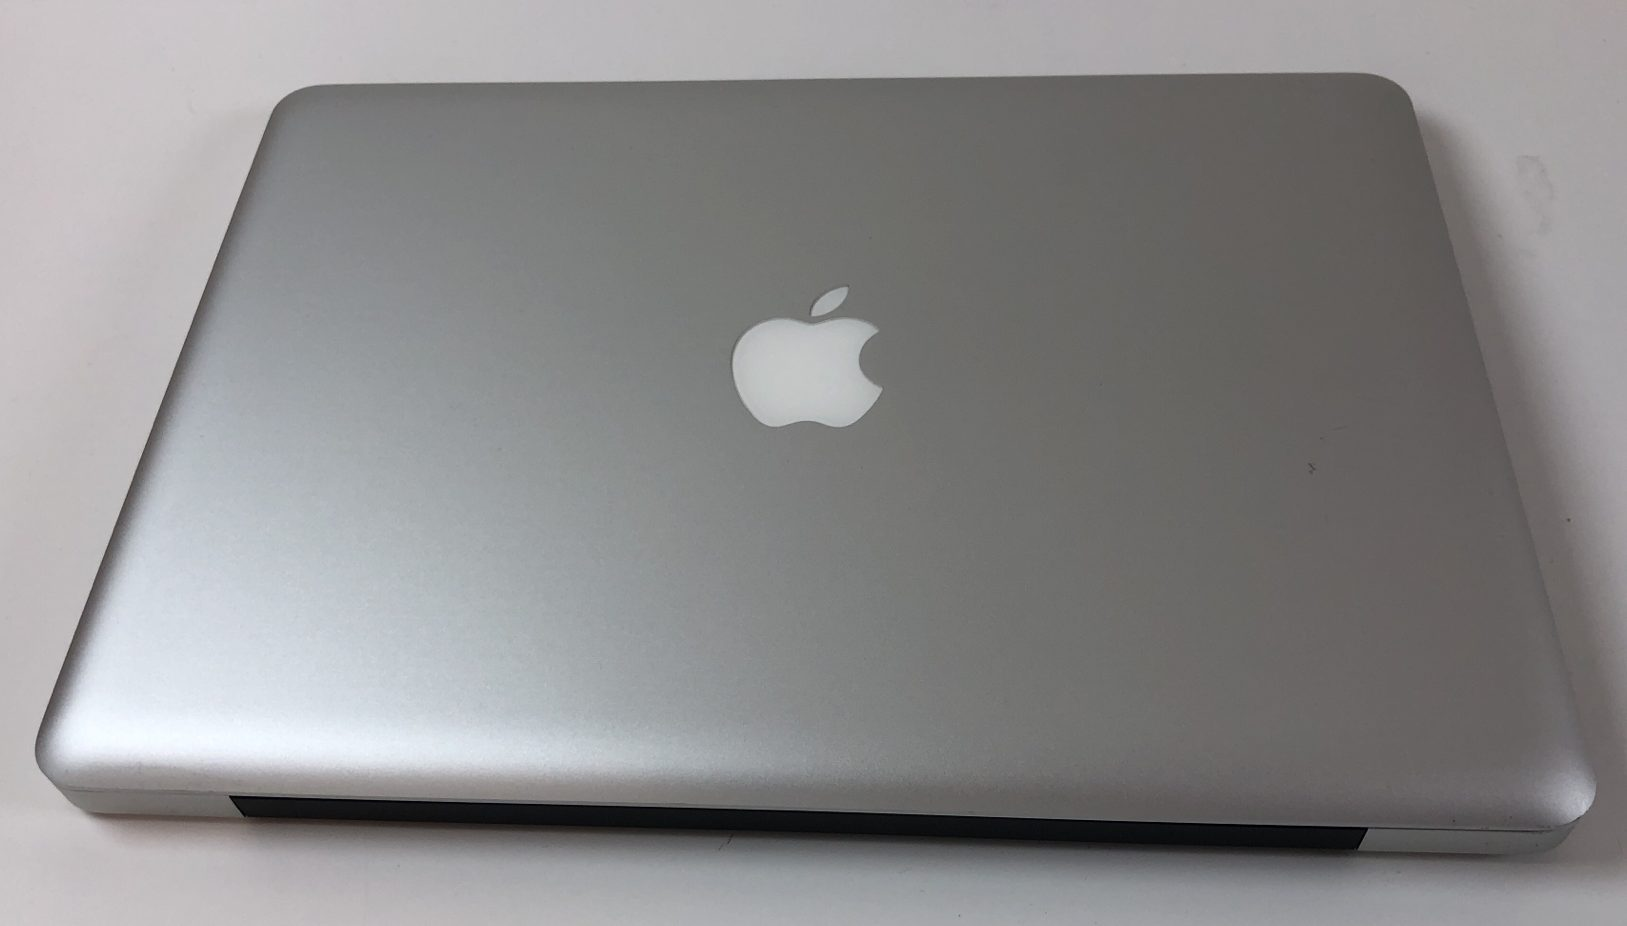 "MacBook Pro 13"" Mid 2012 (Intel Core i5 2.5 GHz 4 GB RAM 500 GB HDD), Intel Core i5 2.5 GHz, 4 GB RAM, 500 GB HDD, Kuva 2"